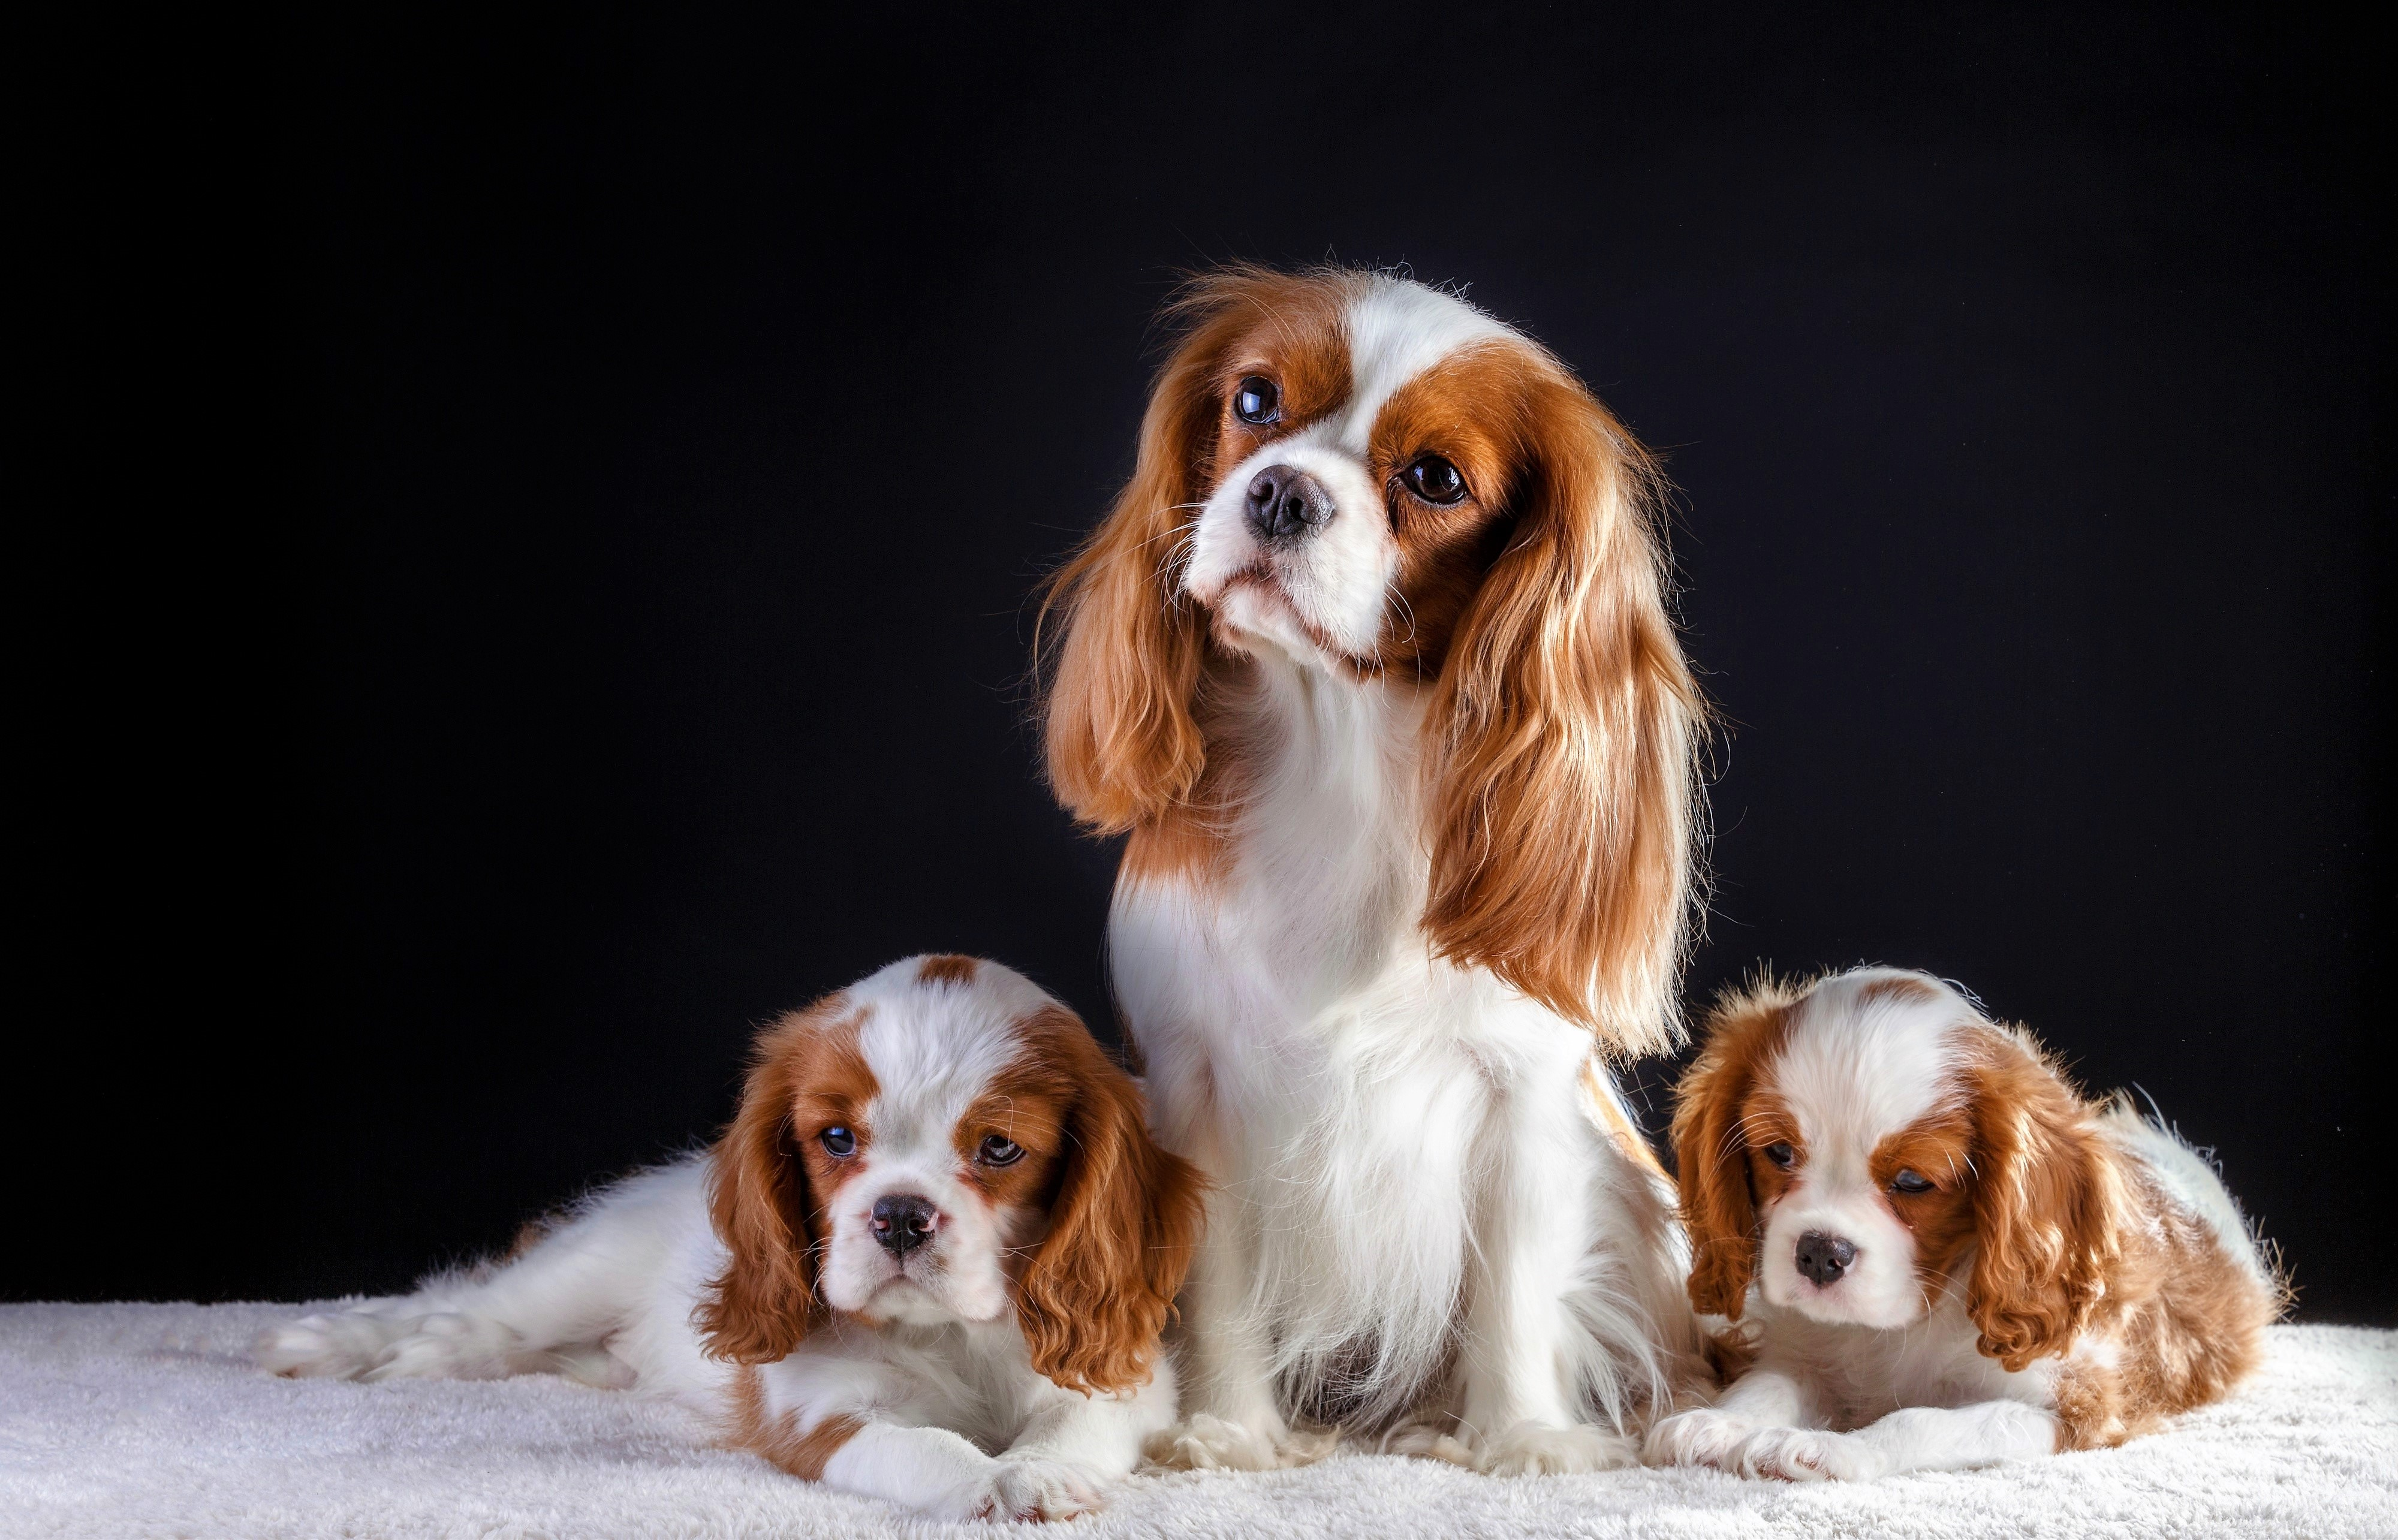 Cavalier King Charles Spaniel Wallpapers Wallpaper Cave